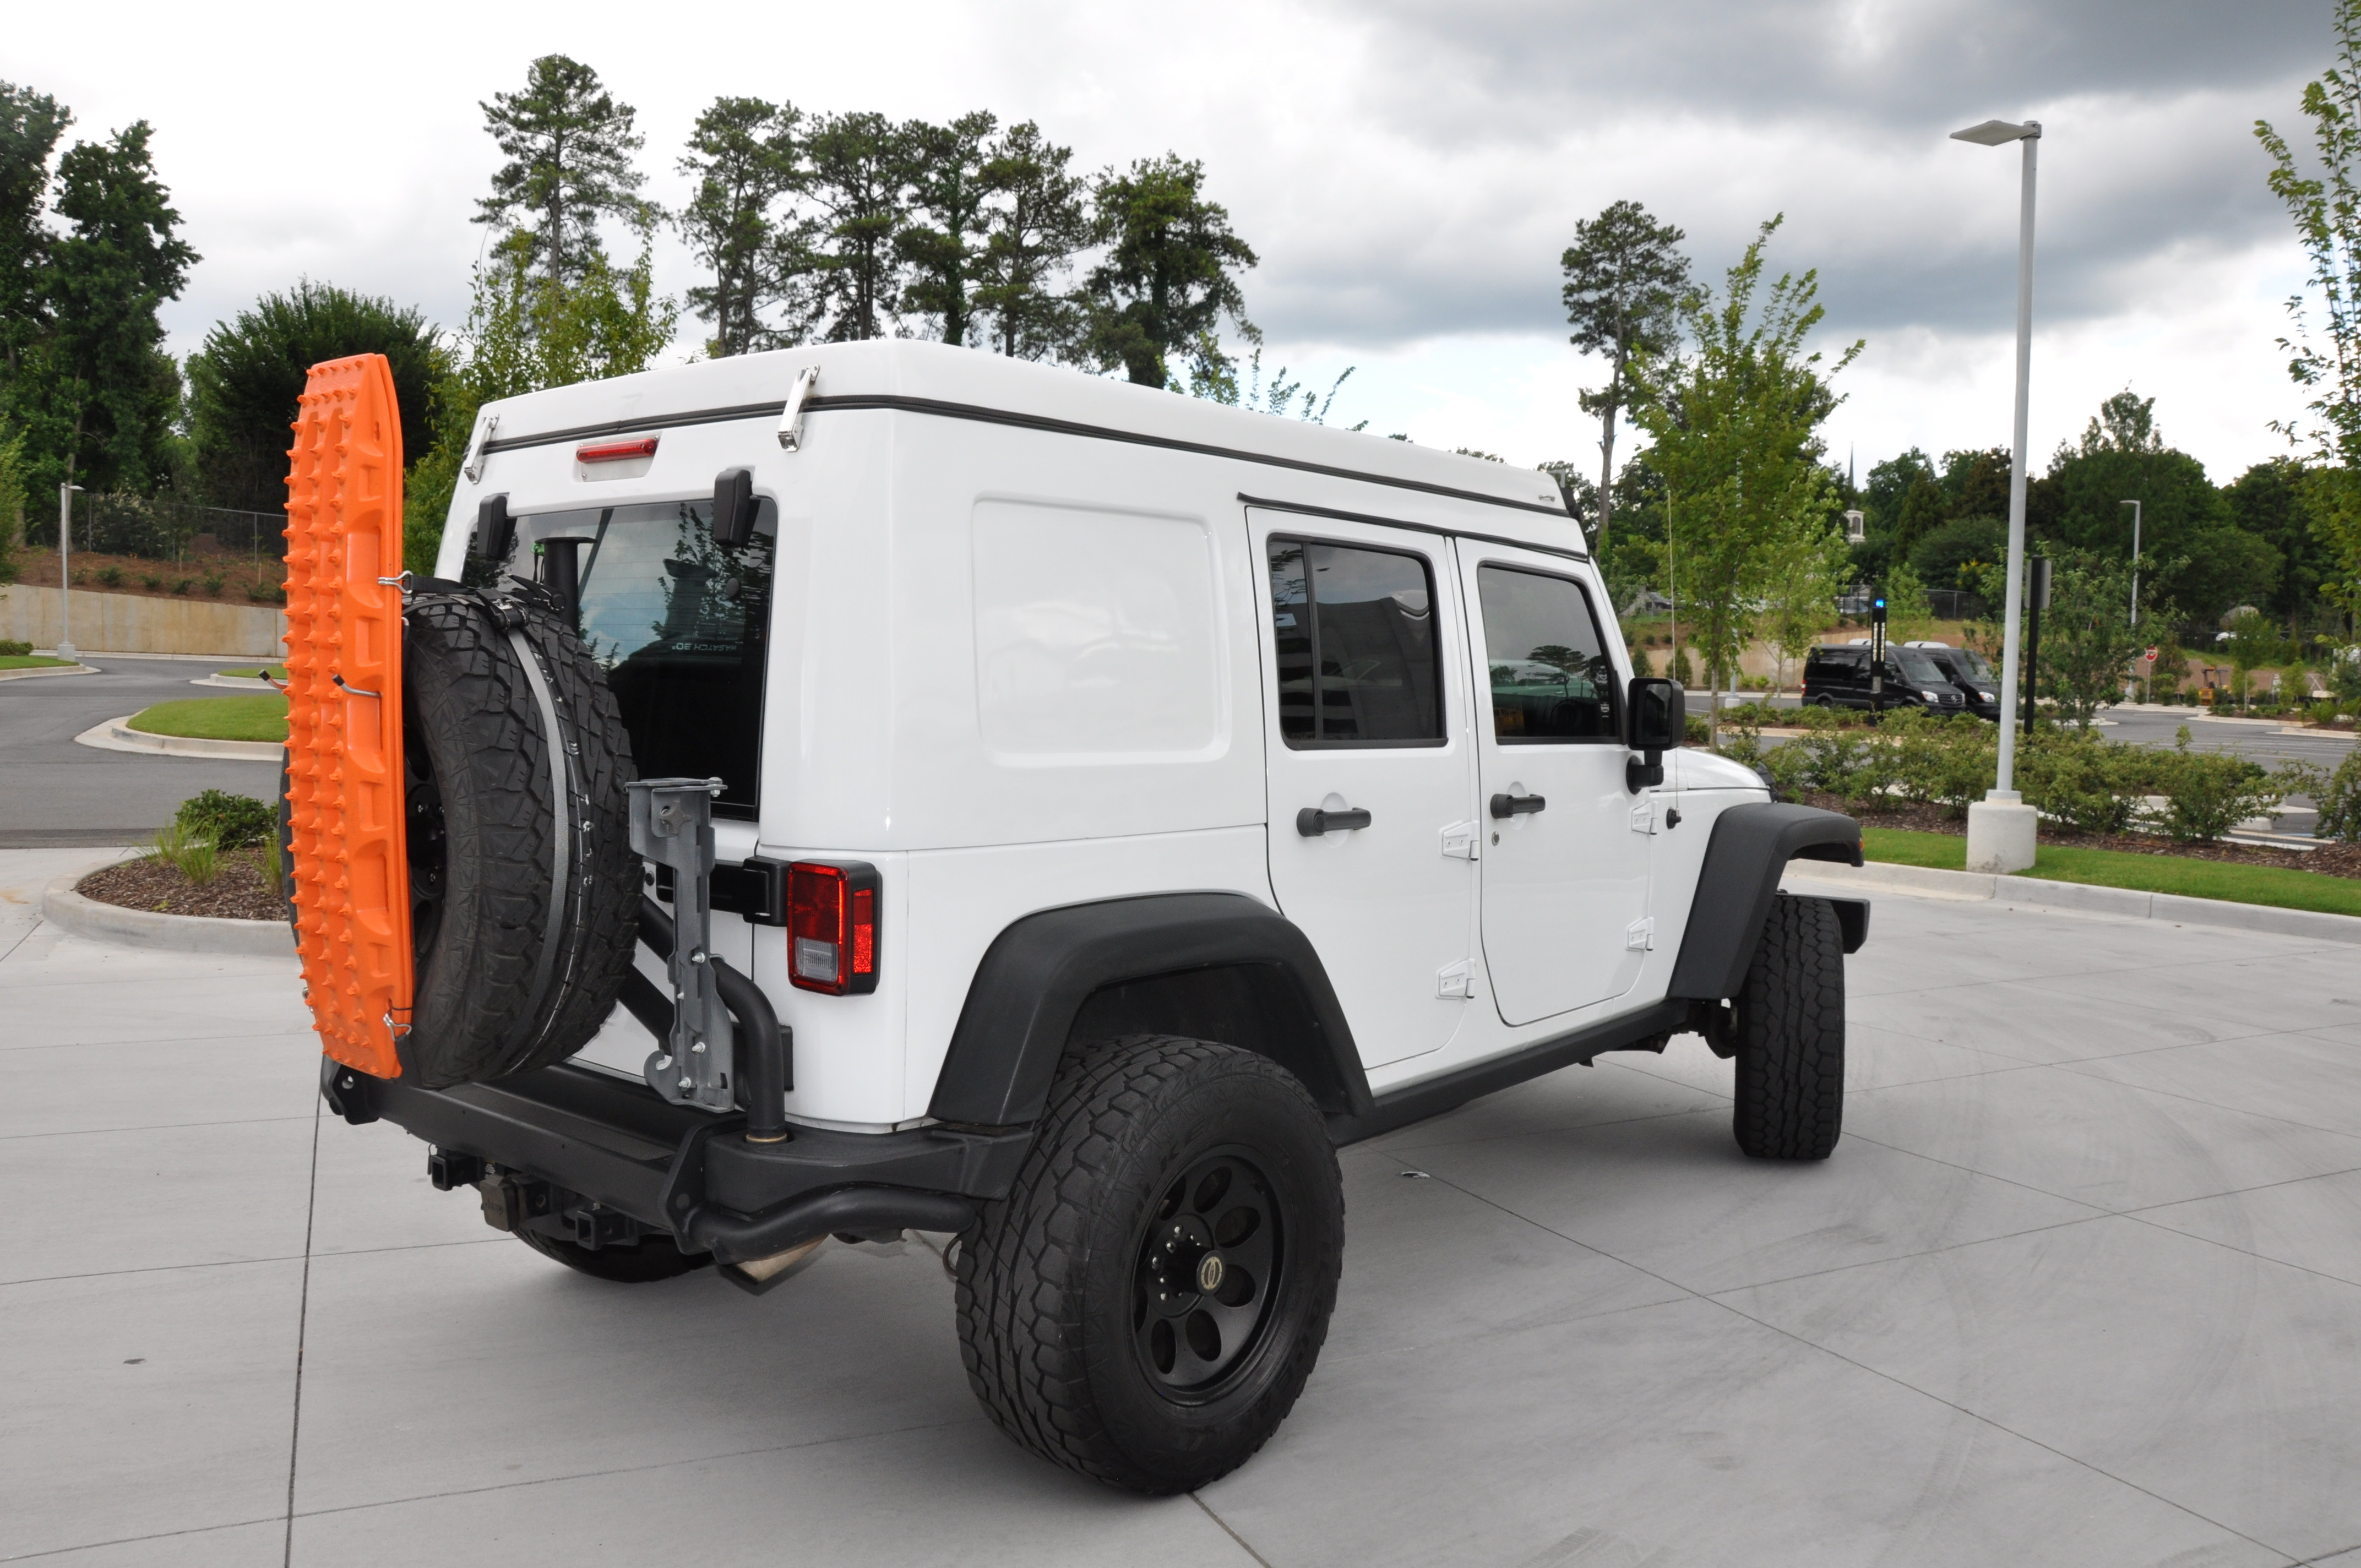 2015 Jeep Wrangler Unlimited with AT Overland Habitat